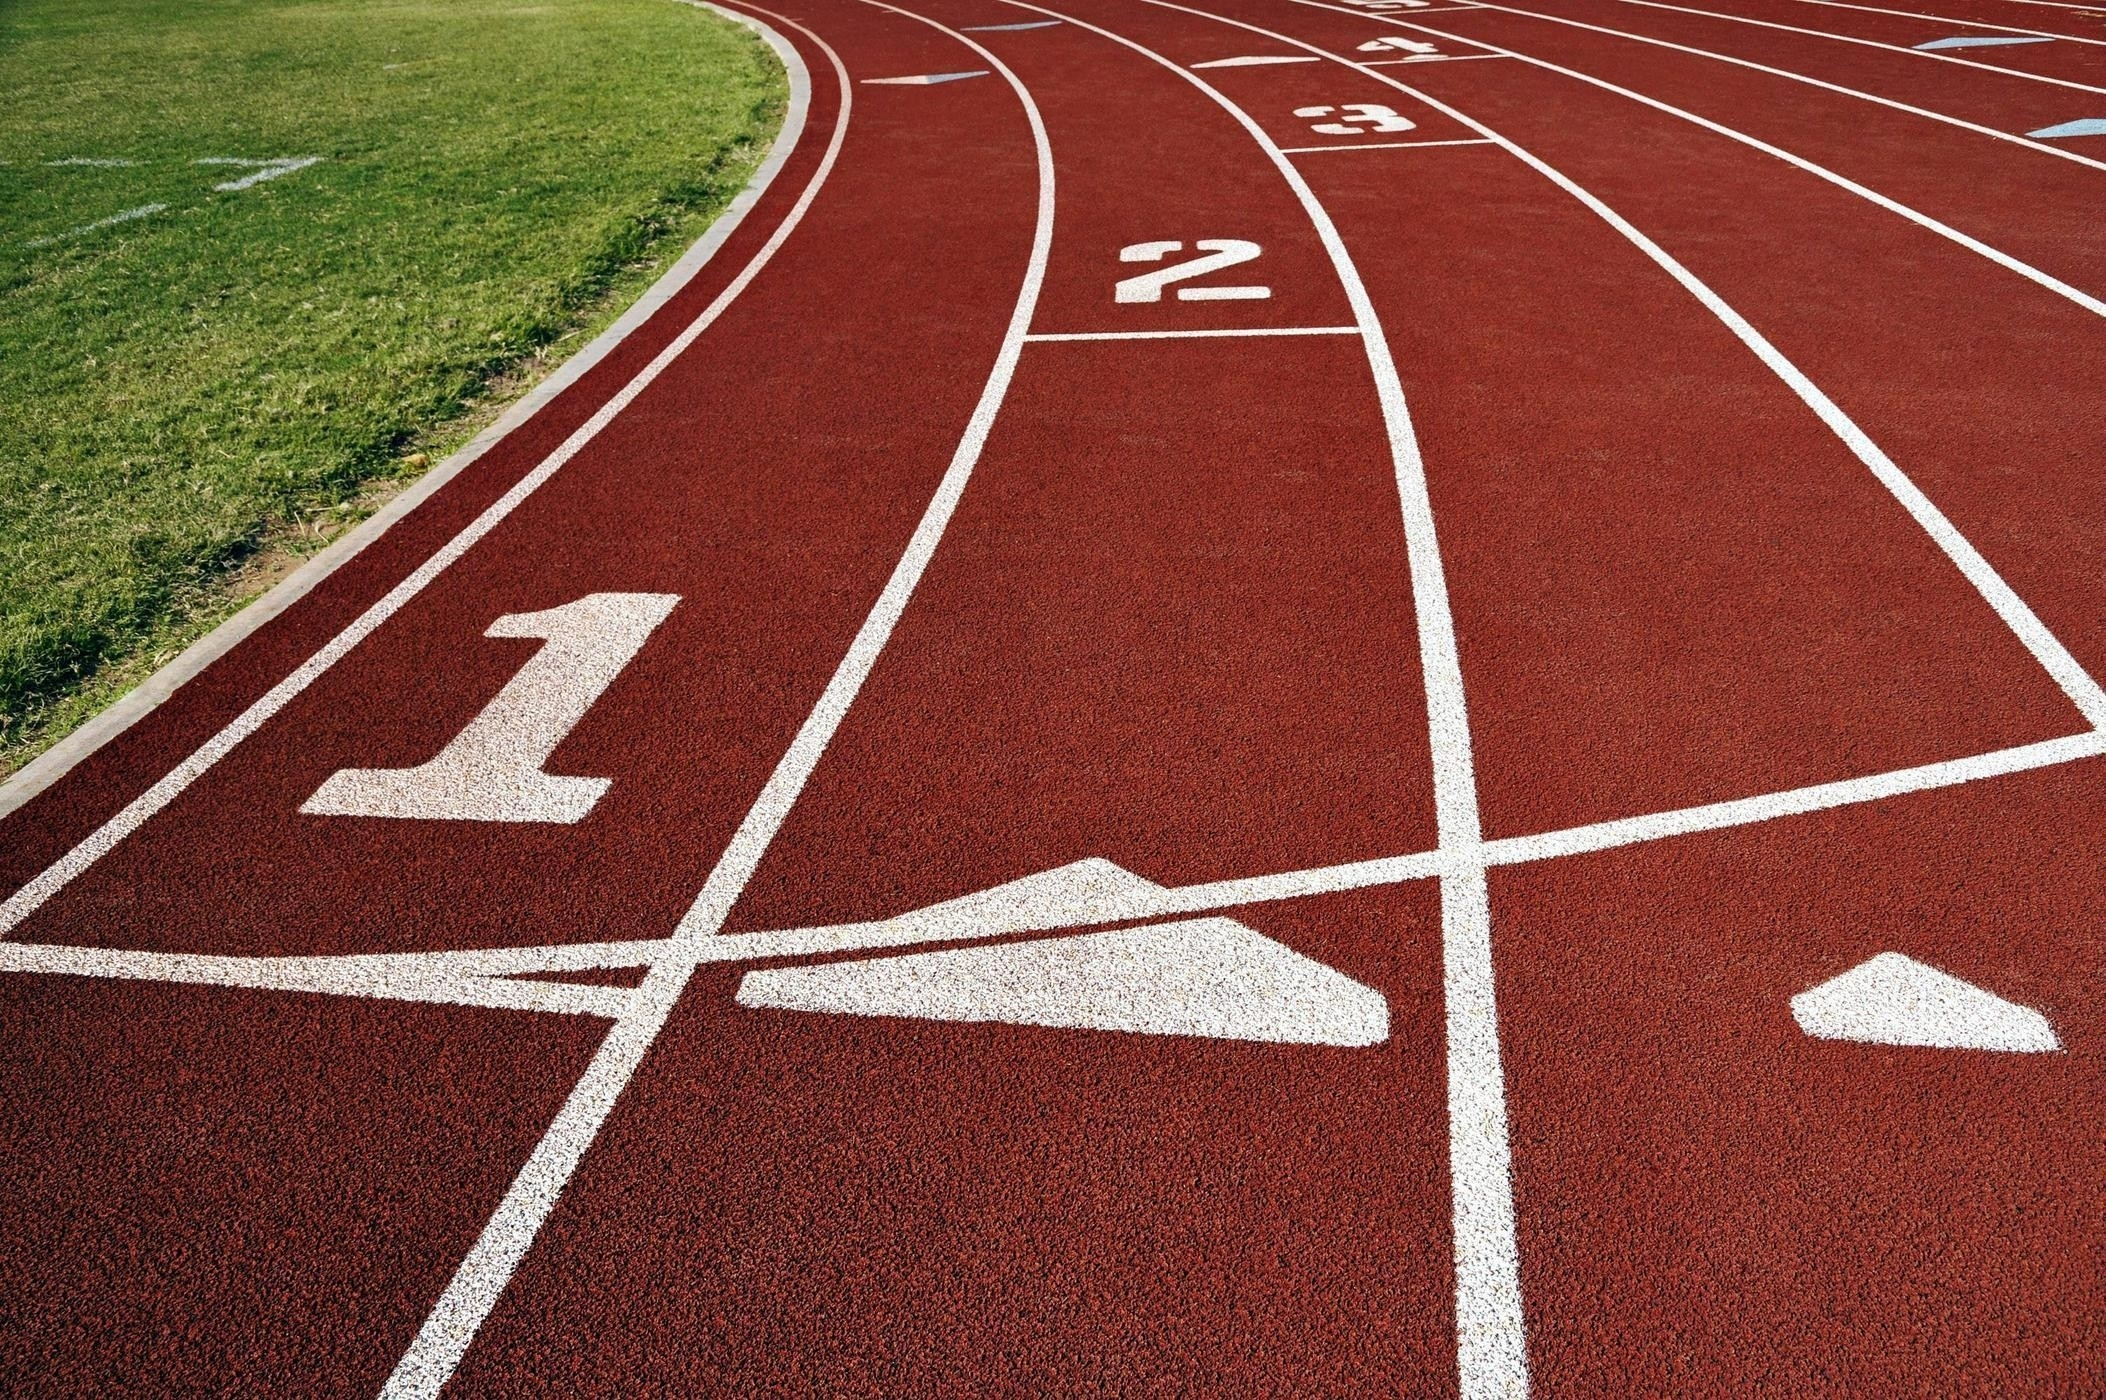 track and field wallpapers (60+ images)